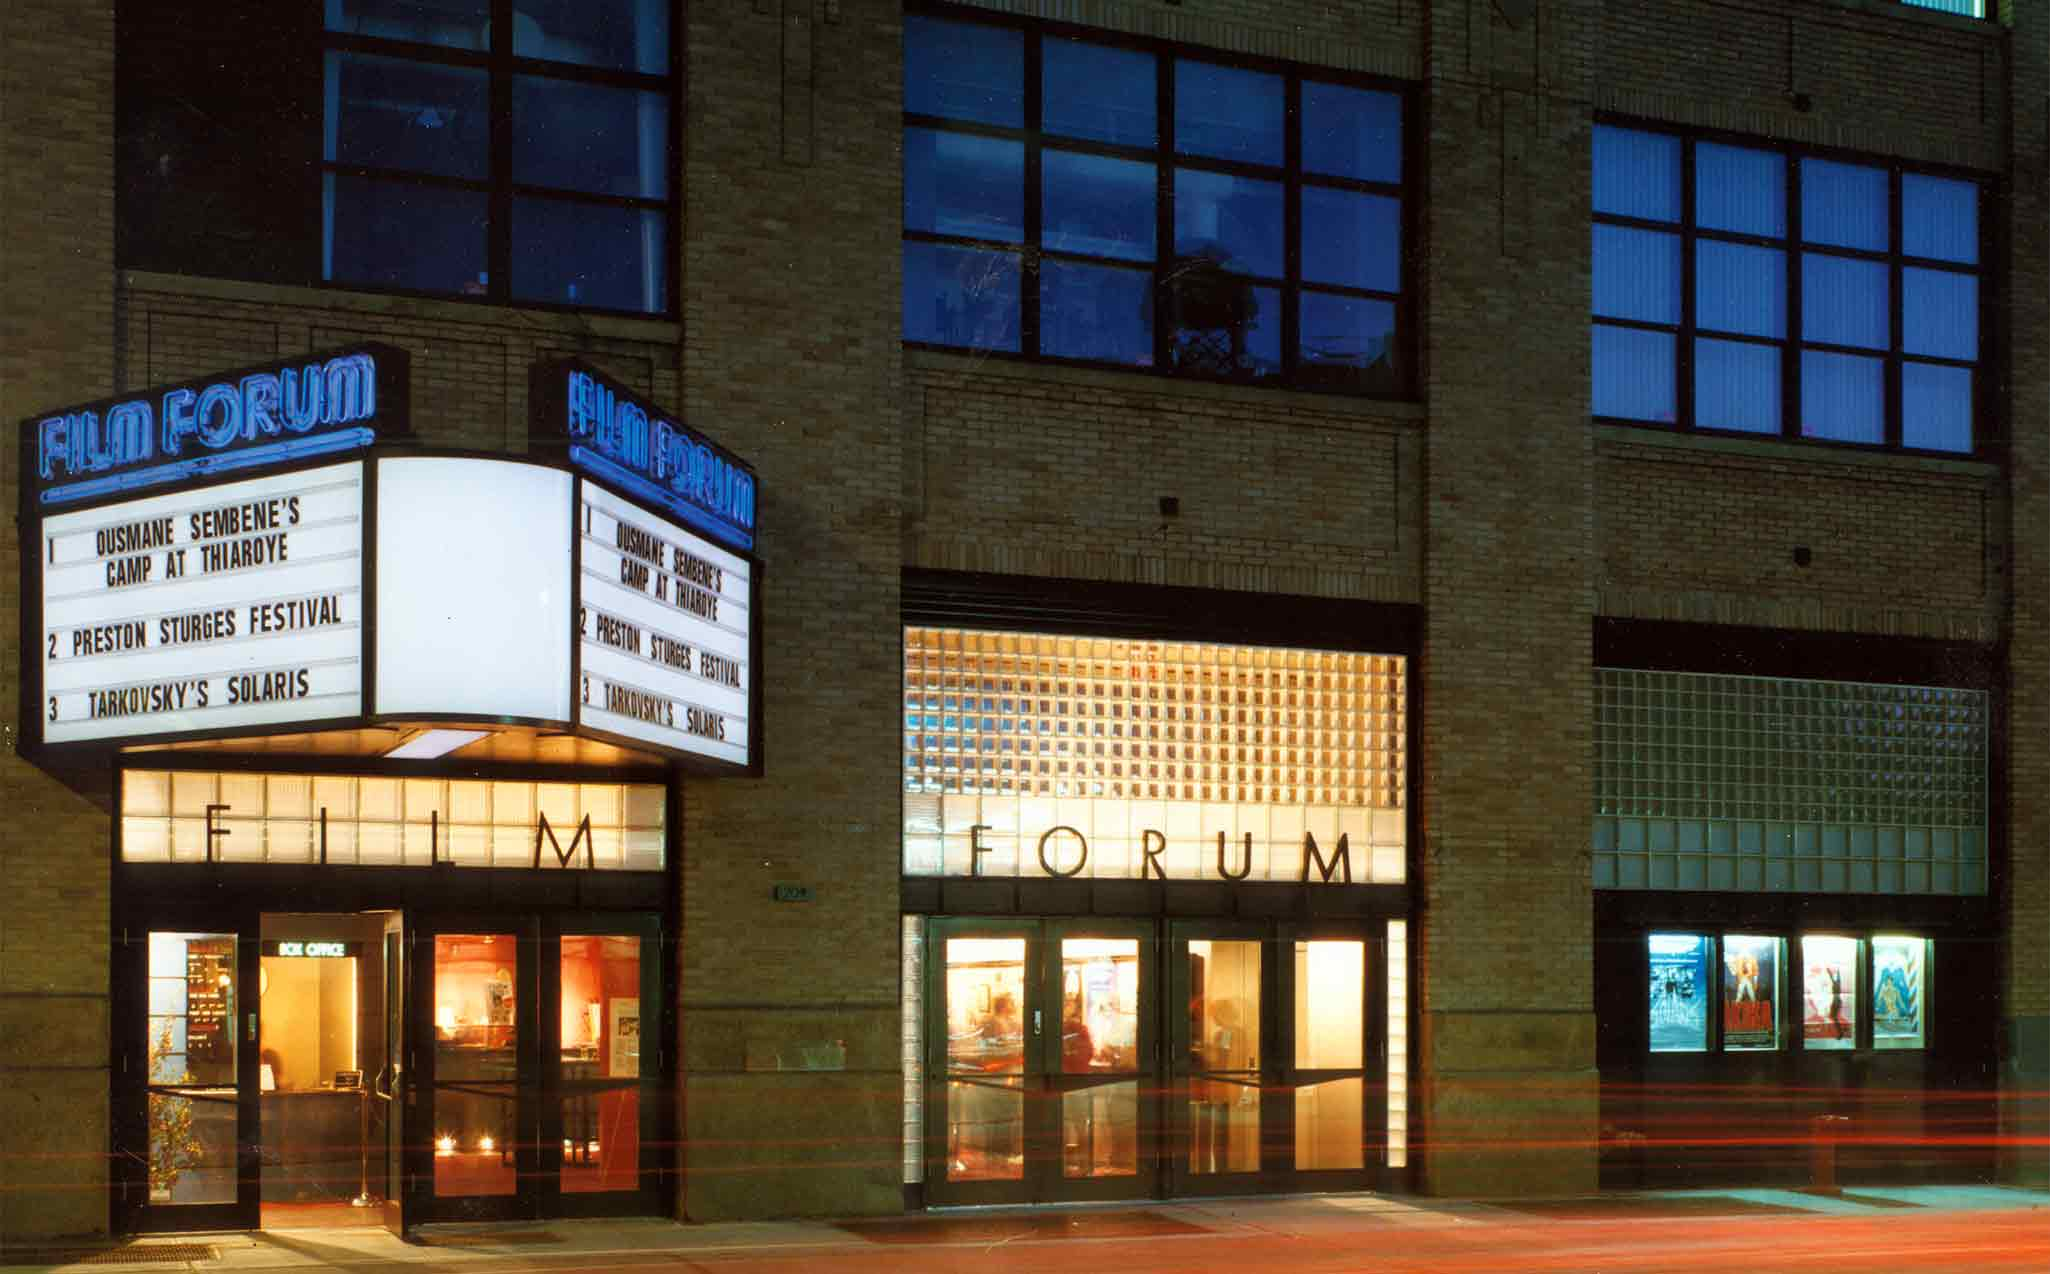 Film Forum's marquee and building, photographed at night